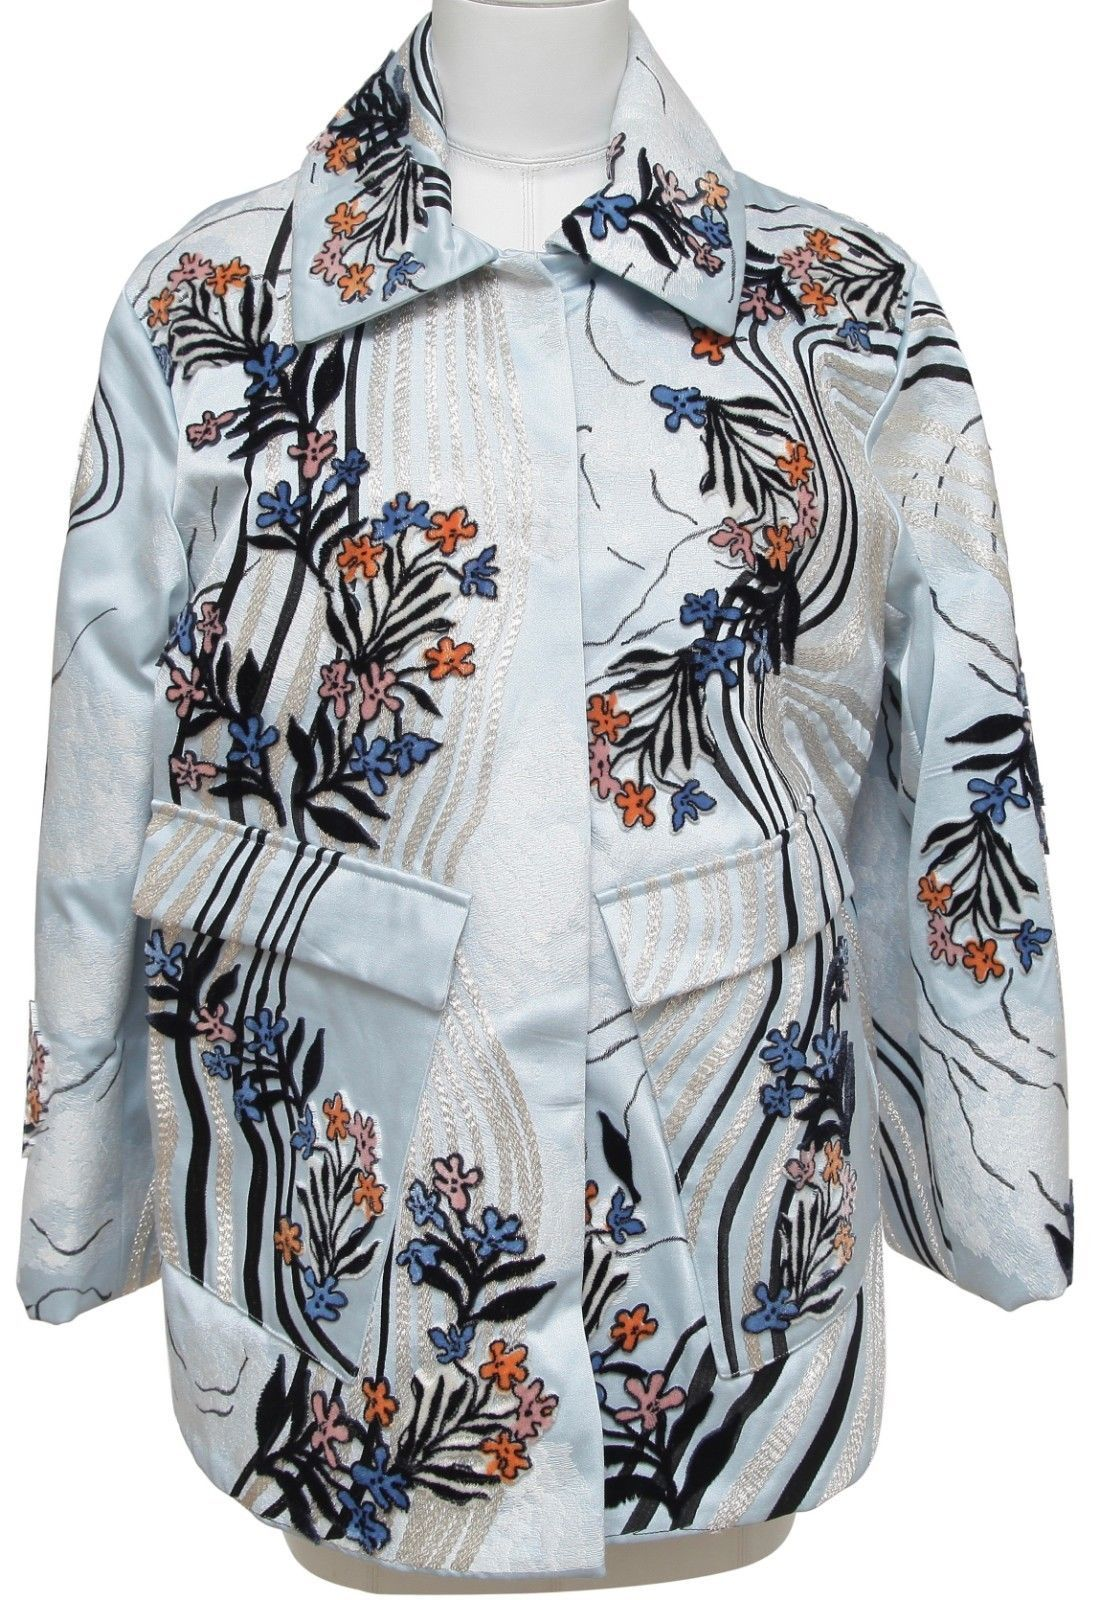 Primary image for H&M CONSCIOUS Coat Jacket Blue Velvet Floral Embroidery Long Sleeve S BNWT